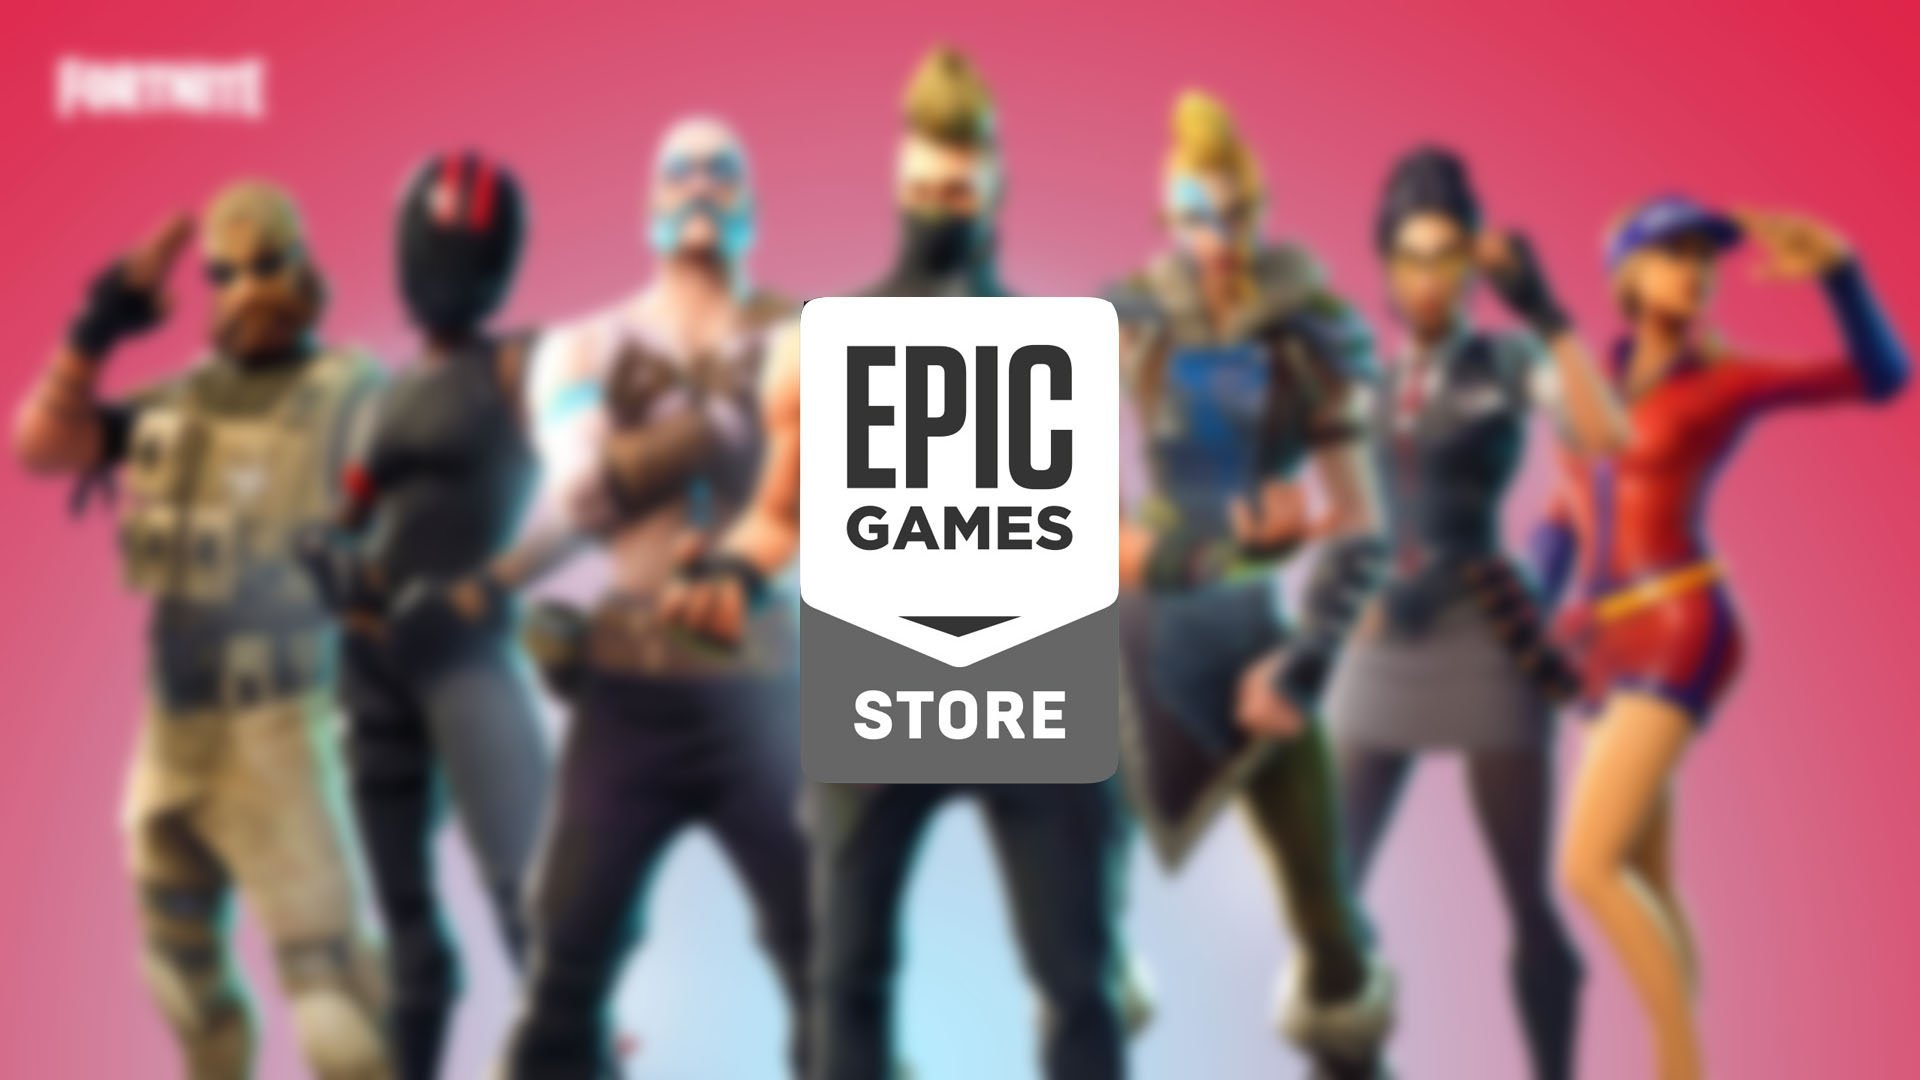 Au nez et à la barbe du Play Store, les créateurs de Fortnite lancent leur propre magasin d'applications